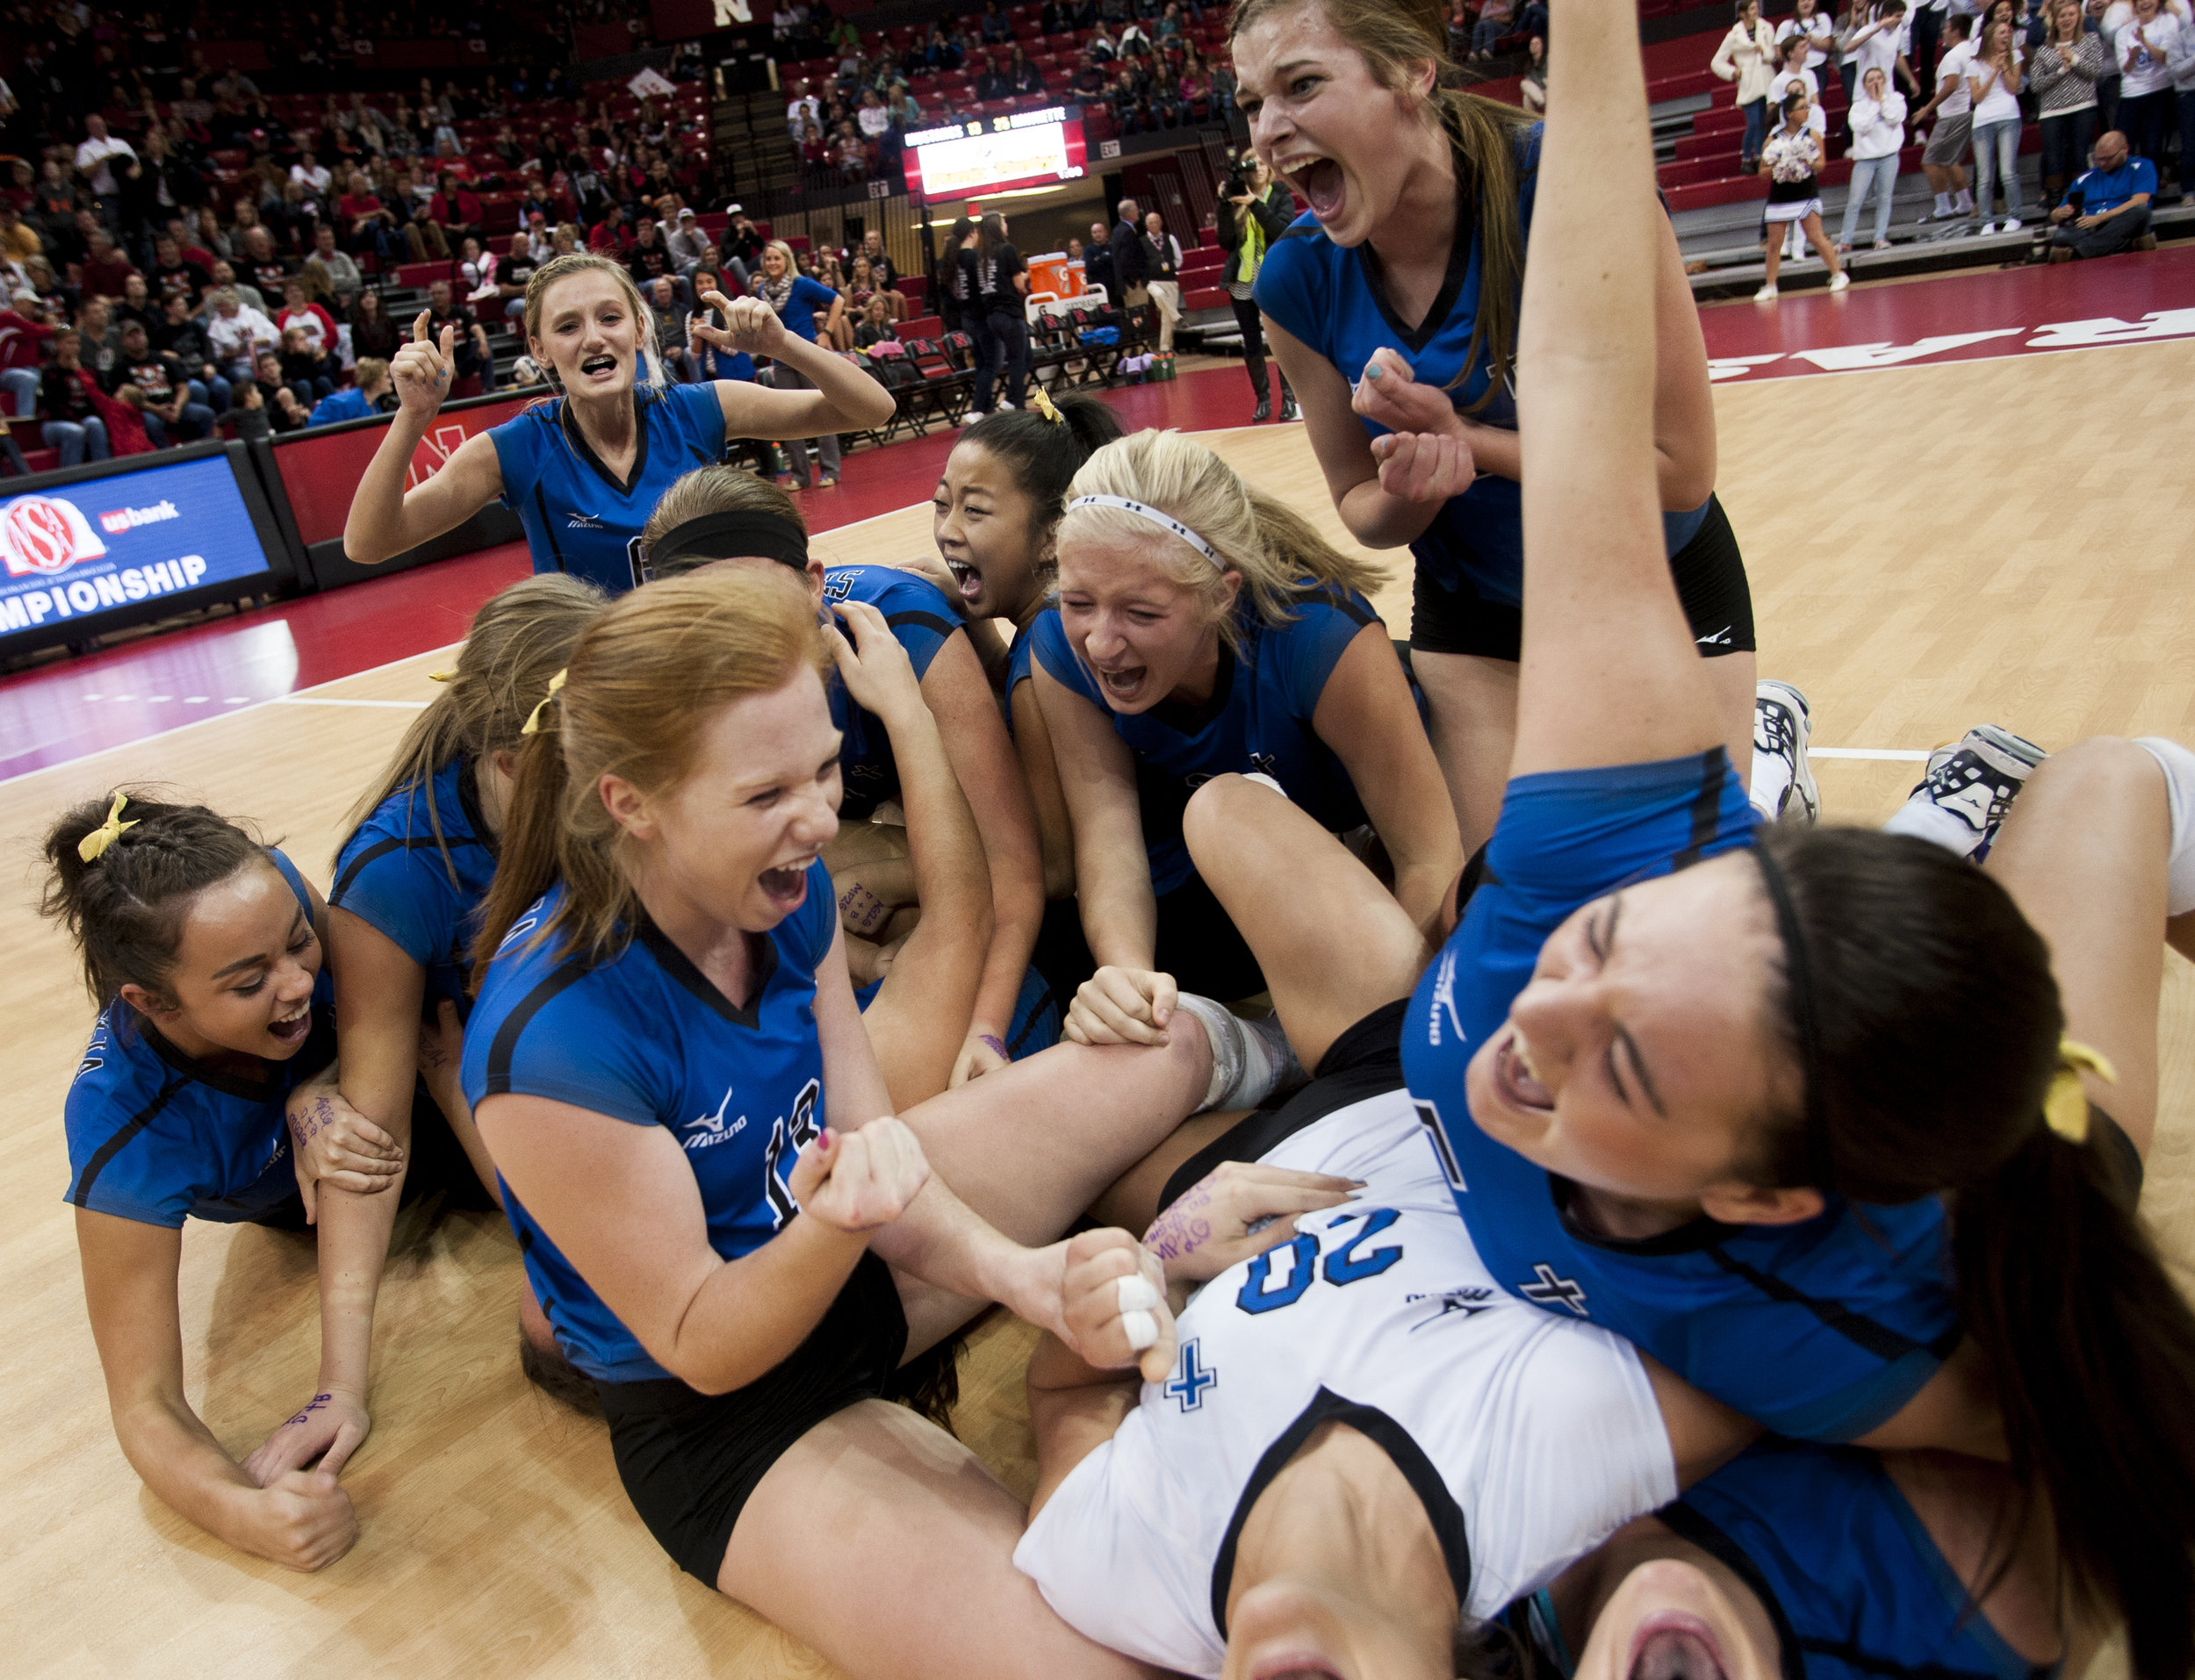 Hastings St. Cecilias' players dog pile at center court after defeating Stanton in three straight sets in the Class C-2 Championship game in Devaney Sports Center Saturday, November 14, 2015 in Lincoln.